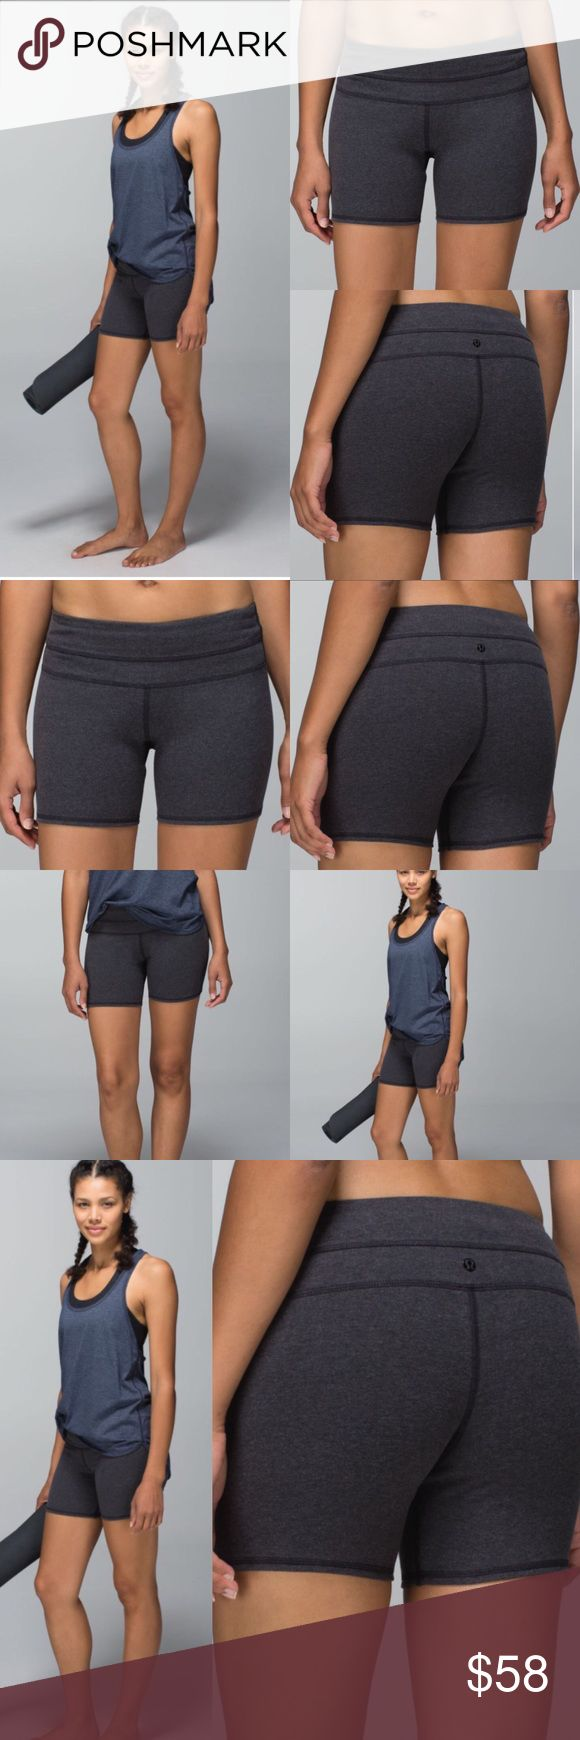 Lululemon💕Groove Cotton Heathered Black Shorts Lovely Lululemon Groove Short *Cotton in Heathered Black perfect for any activity!   Size 6  EEUC no flaws, snags,rips, or stains.  🚫trades//bundle and save!! lululemon athletica Shorts